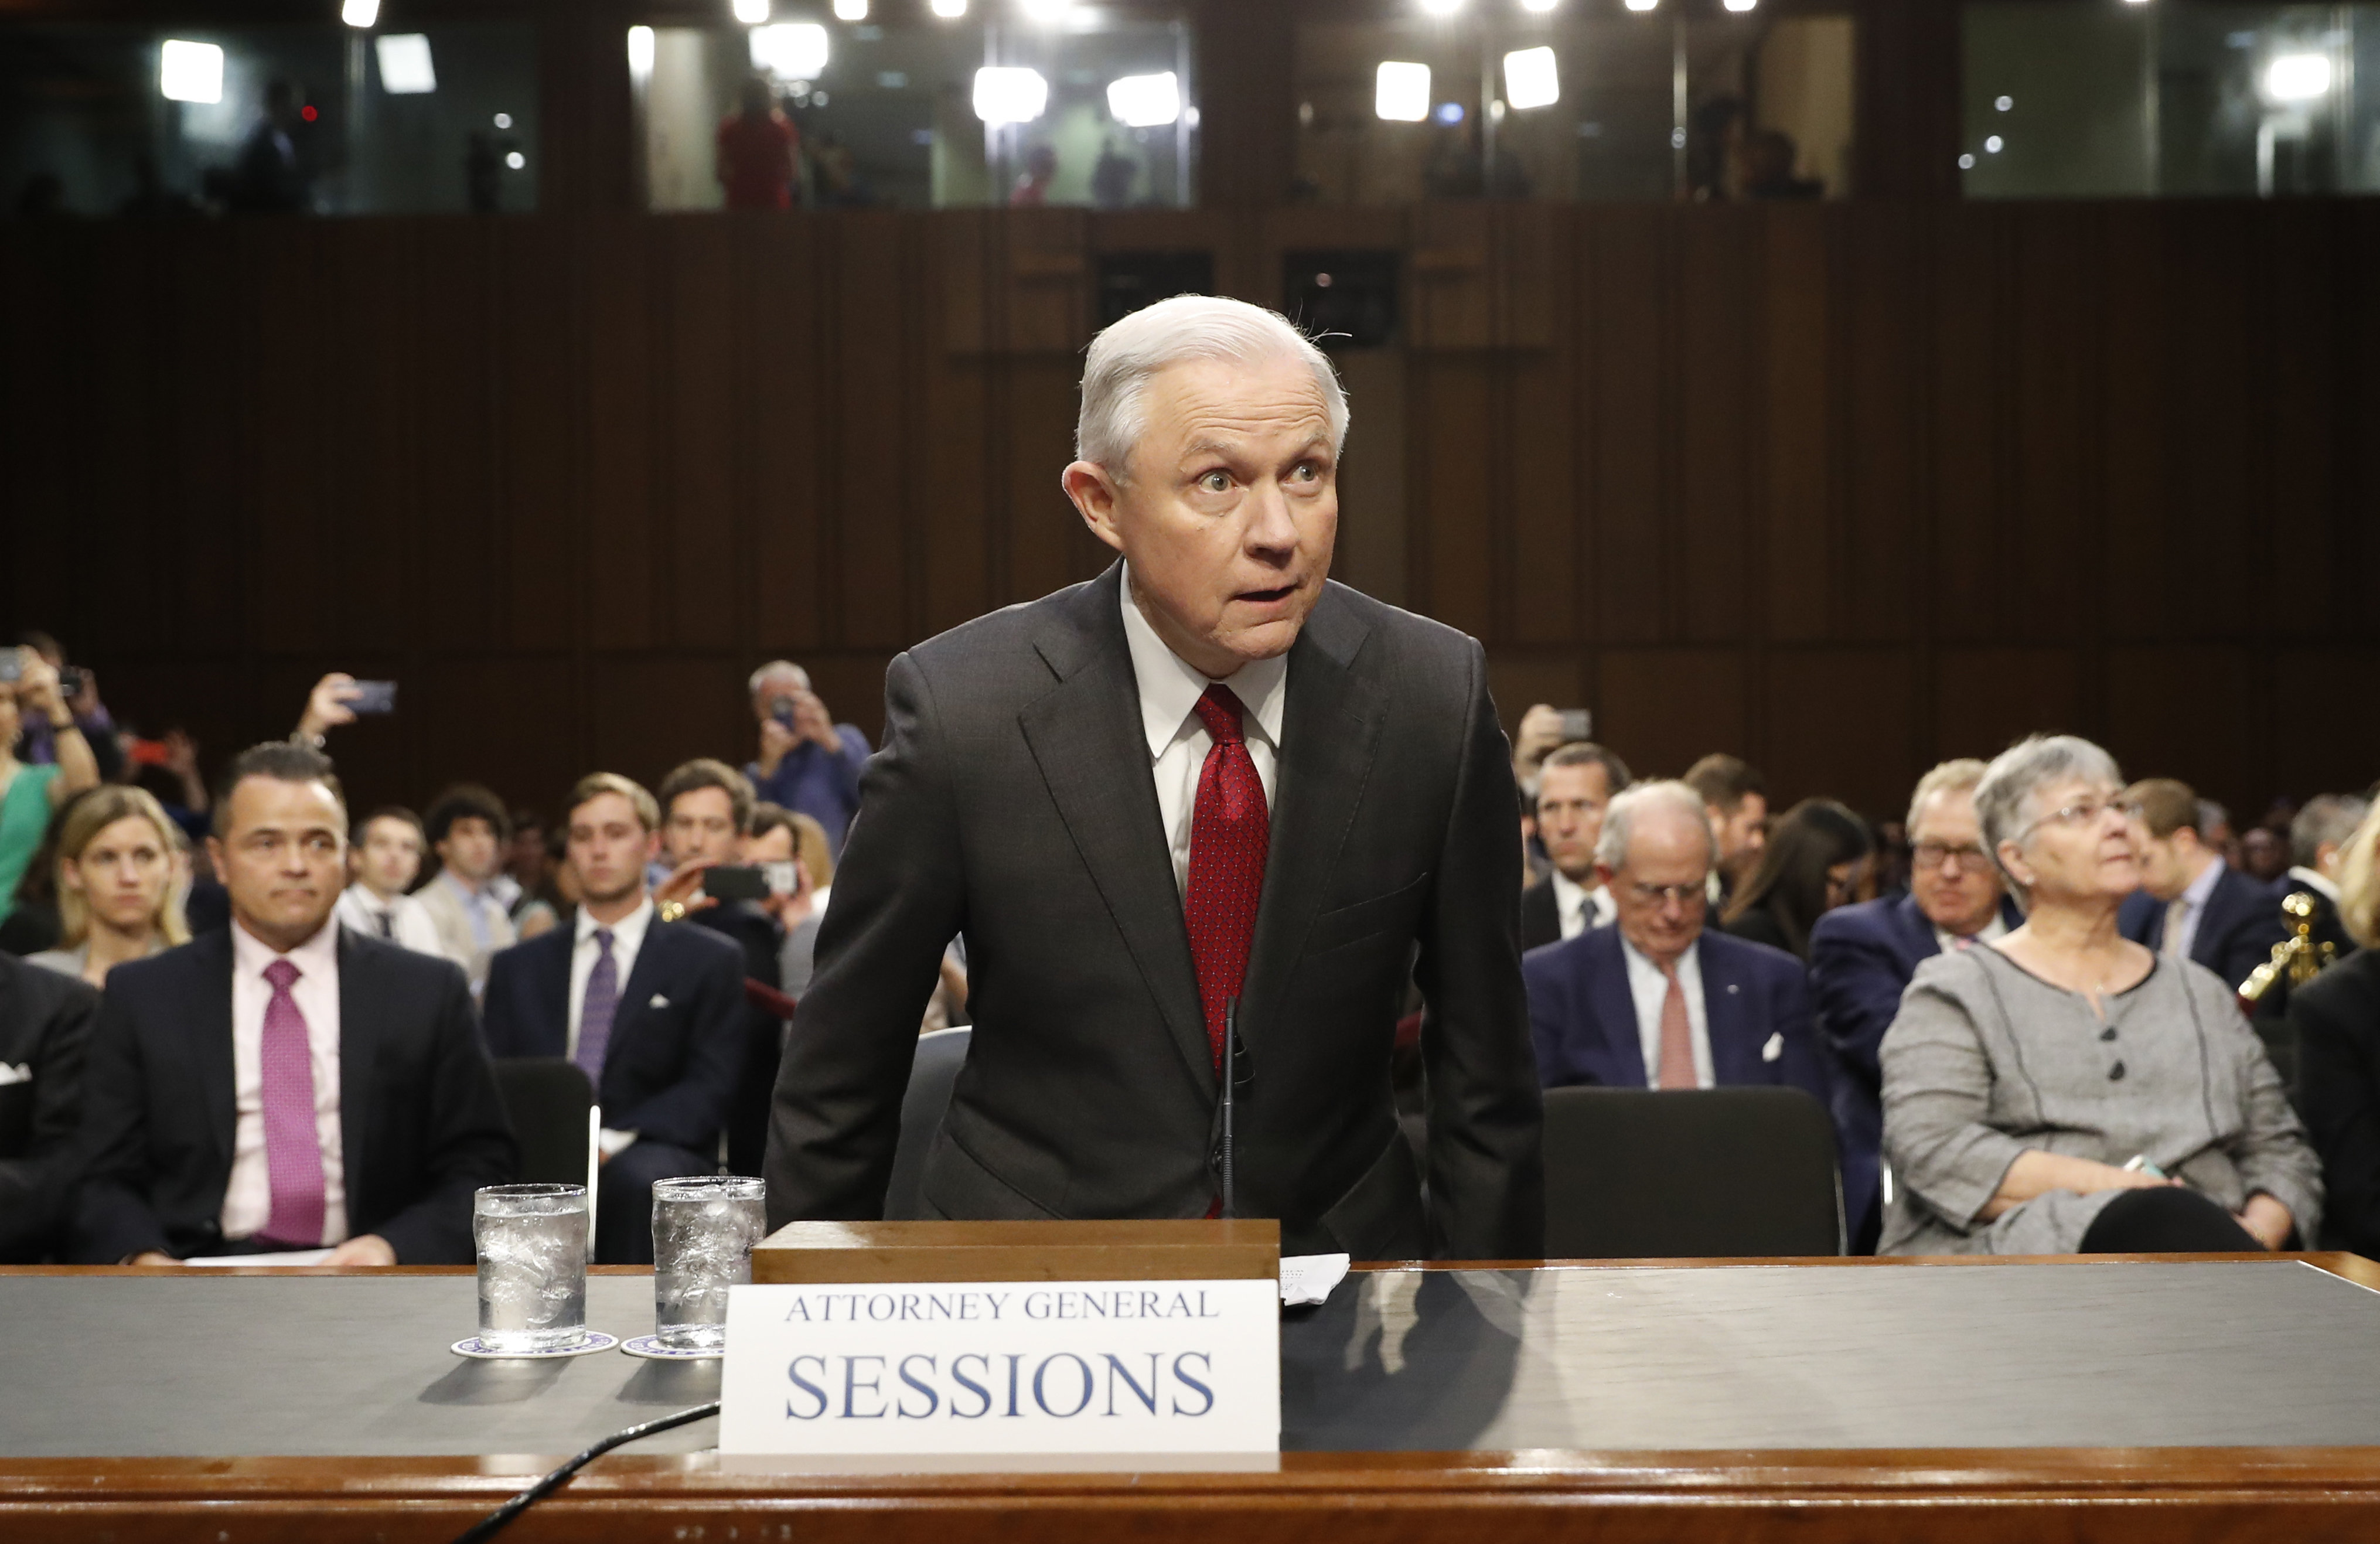 Attorney General Jeff Sessions arrives on Capitol Hill in Washington, Tuesday, June 13, 2017, to testify before the Senate Intelligence Committee hearing about his role in the firing of James Comey, his Russian contacts during the campaign and his decision to recuse from an investigation into possible ties between Moscow and associates of President Donald Trump.